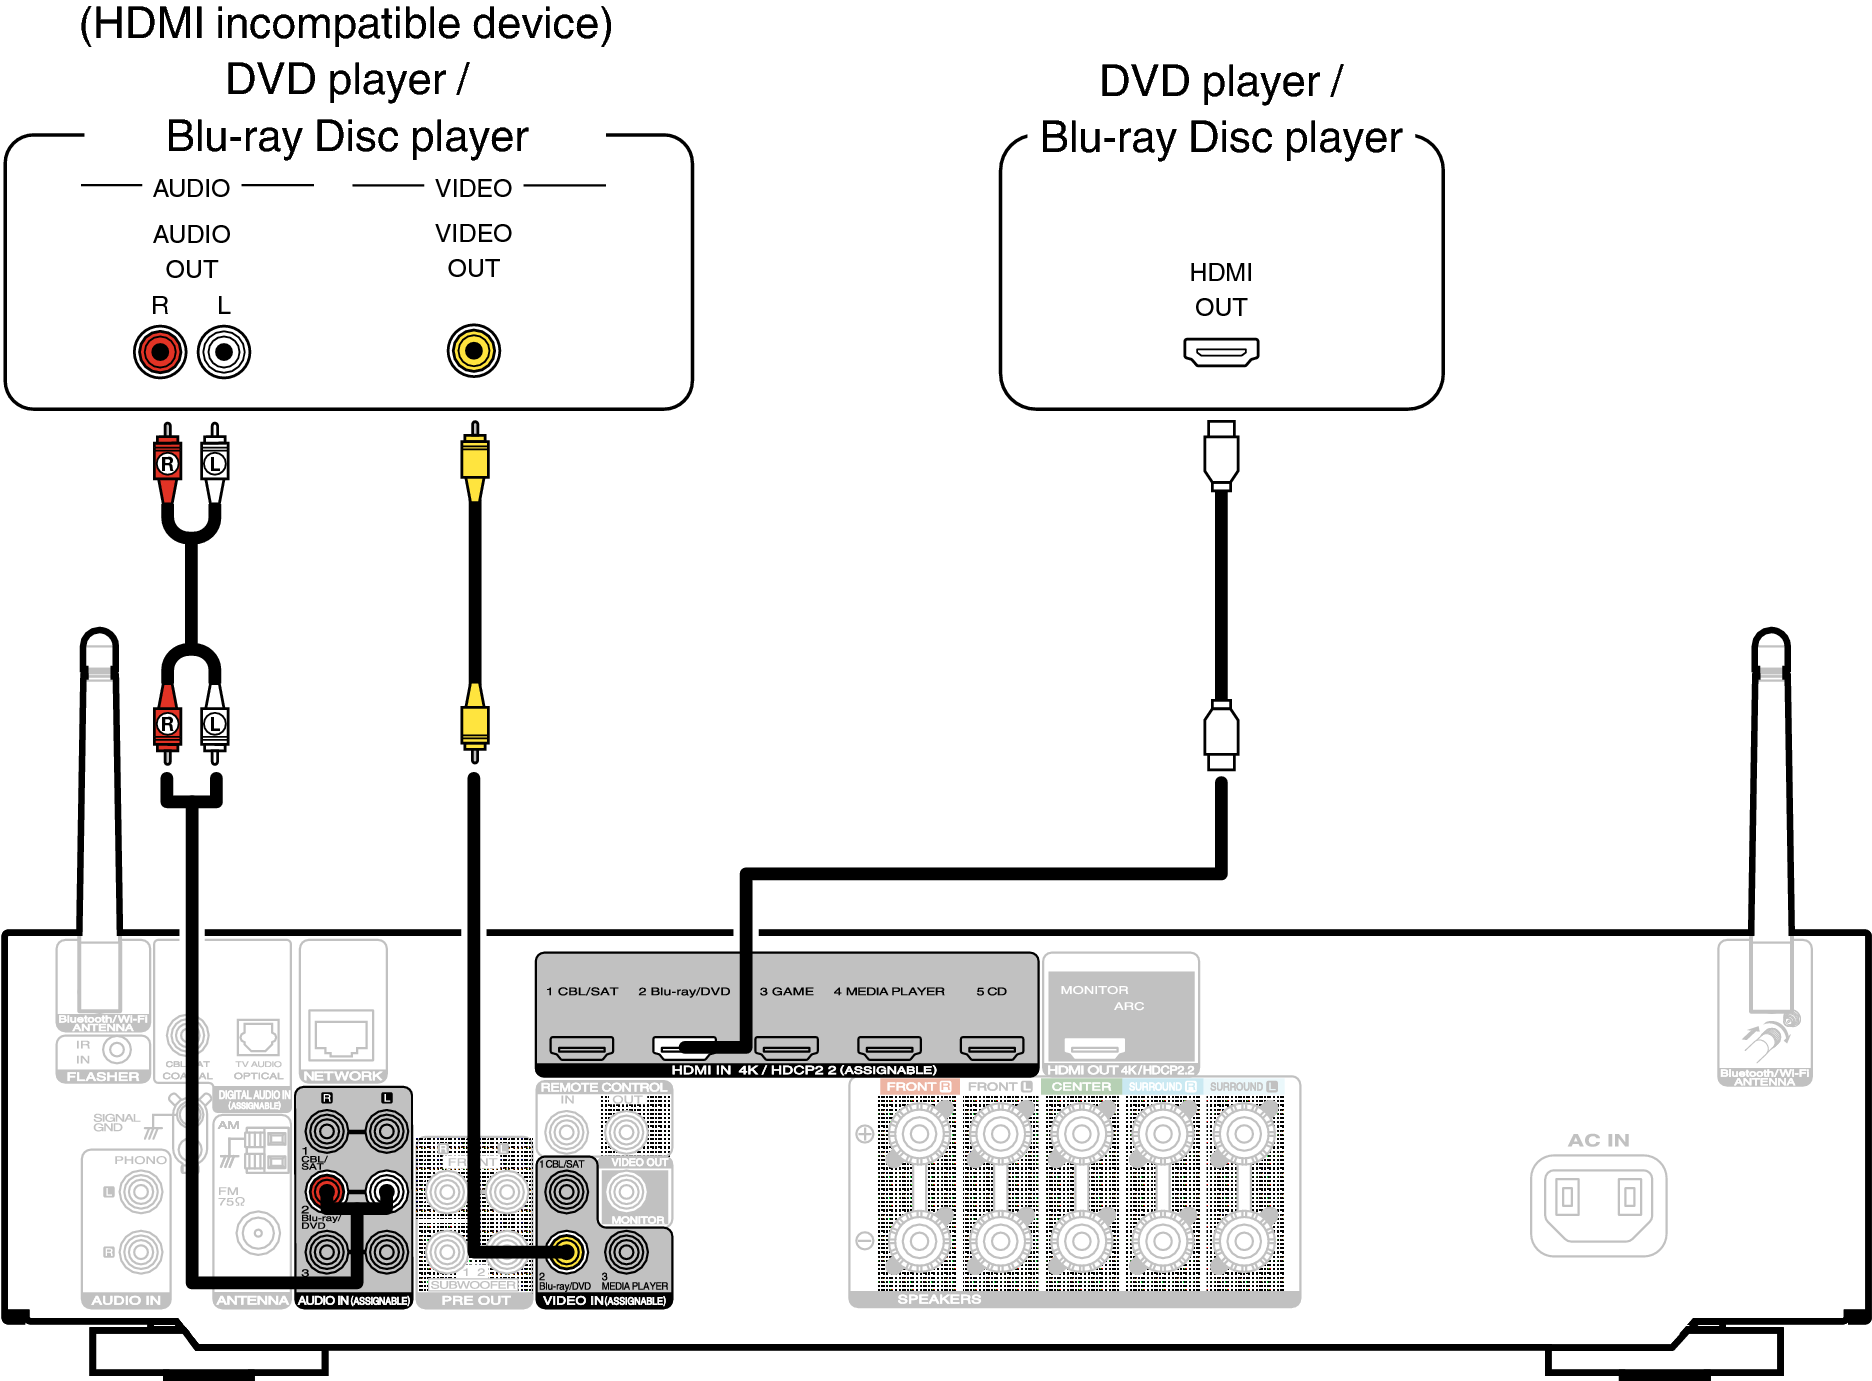 Connecting a DVD player or Blu-ray Disc player NR1509